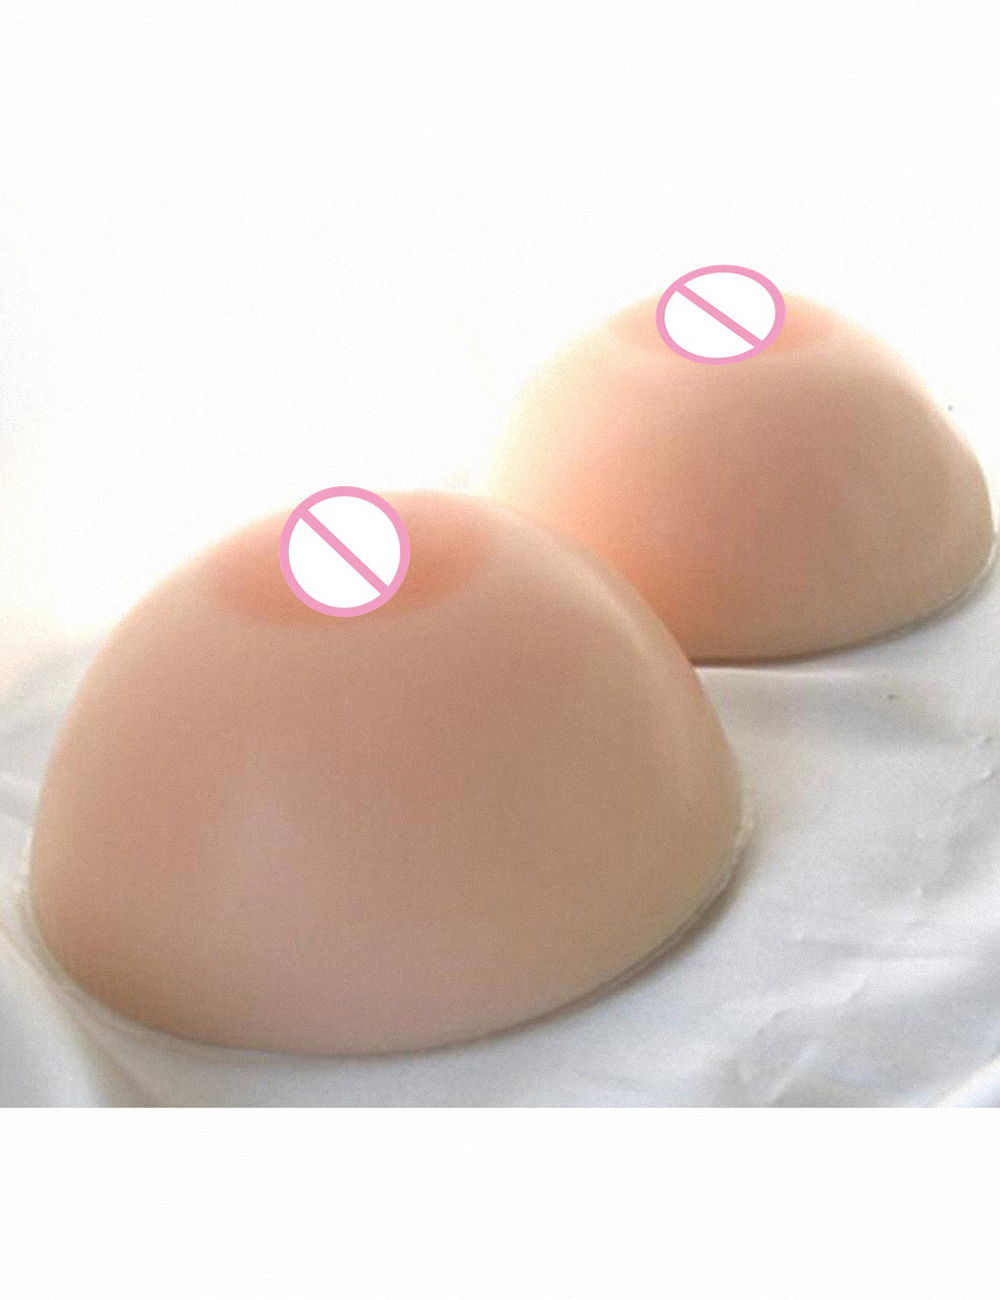 Round Shape 1800G/Pair H Cup Silicone Breast Form False Tit Chest Artificial  Boob Enhancer Bust  For  Transgender Crossdresser